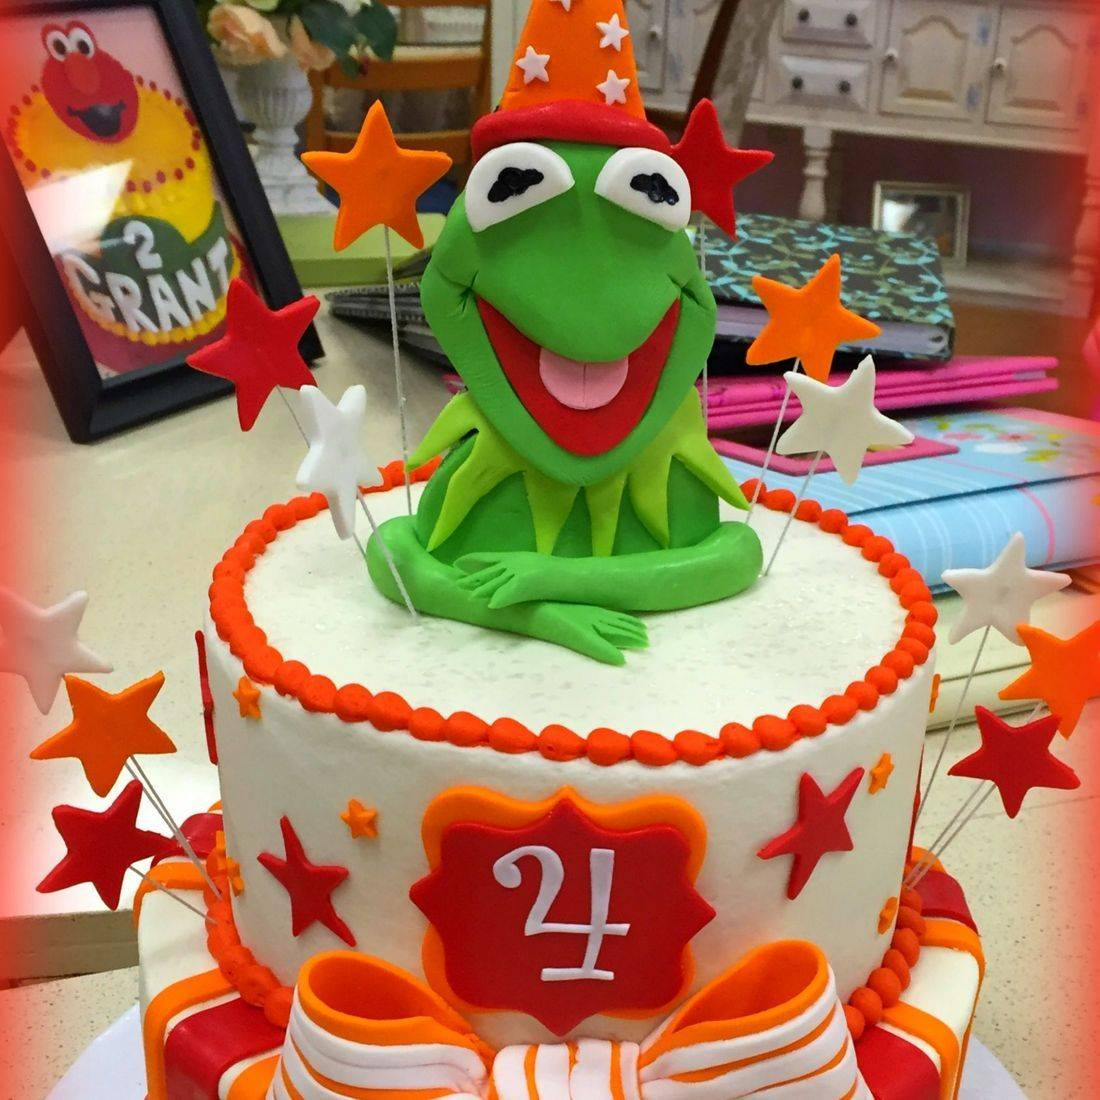 Kermit the Frog birthday cake muppets cake frog cake